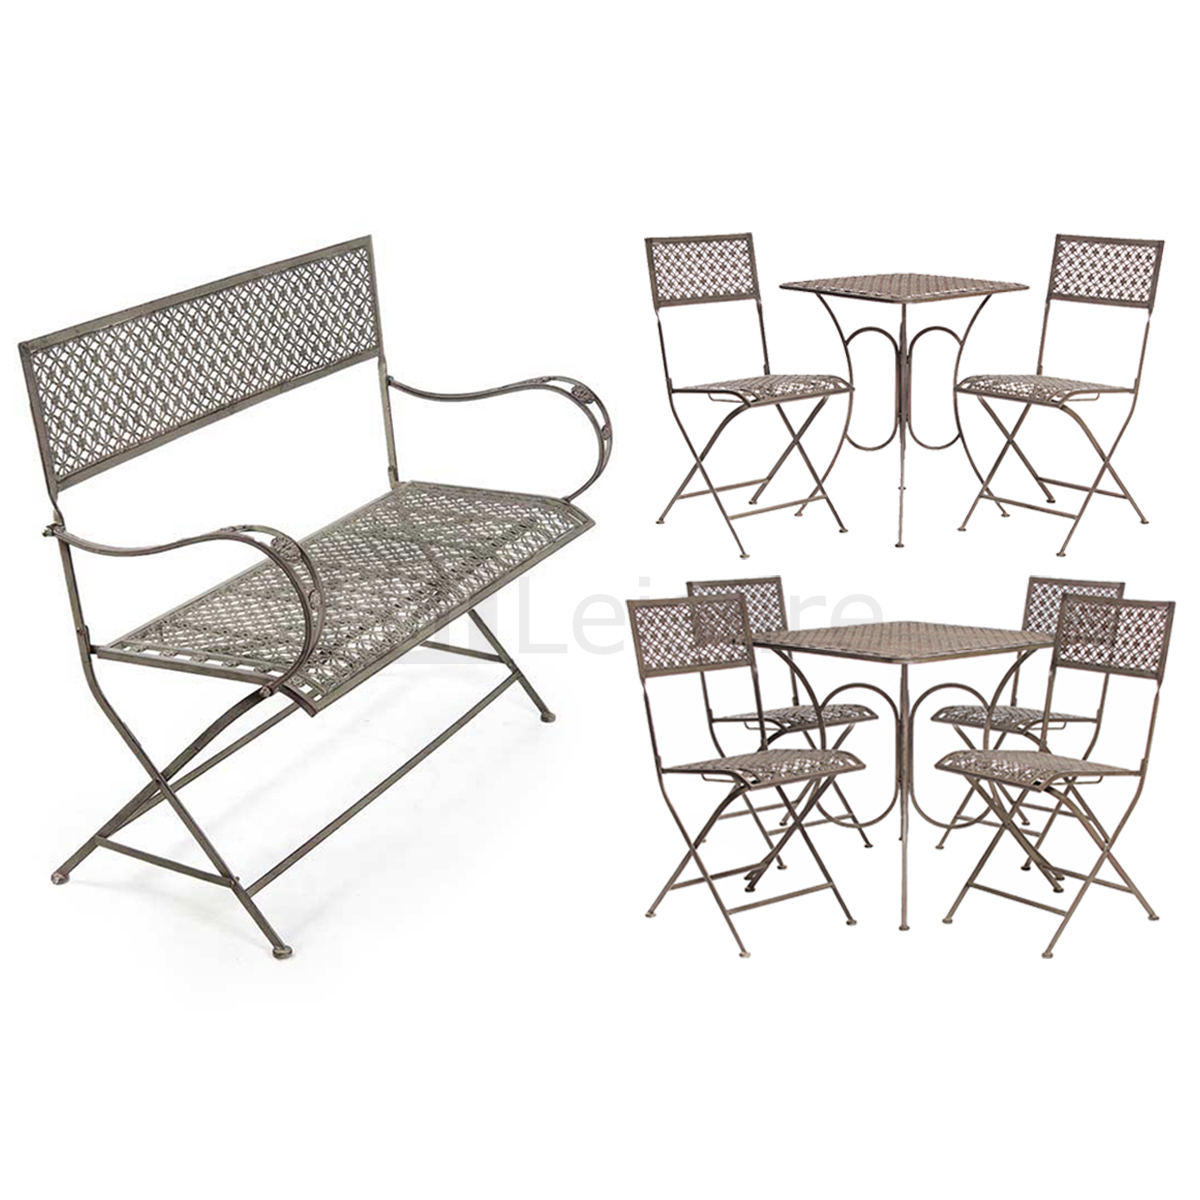 Vintage steel bistro furniture set garden table and chairs for Deck table and chairs